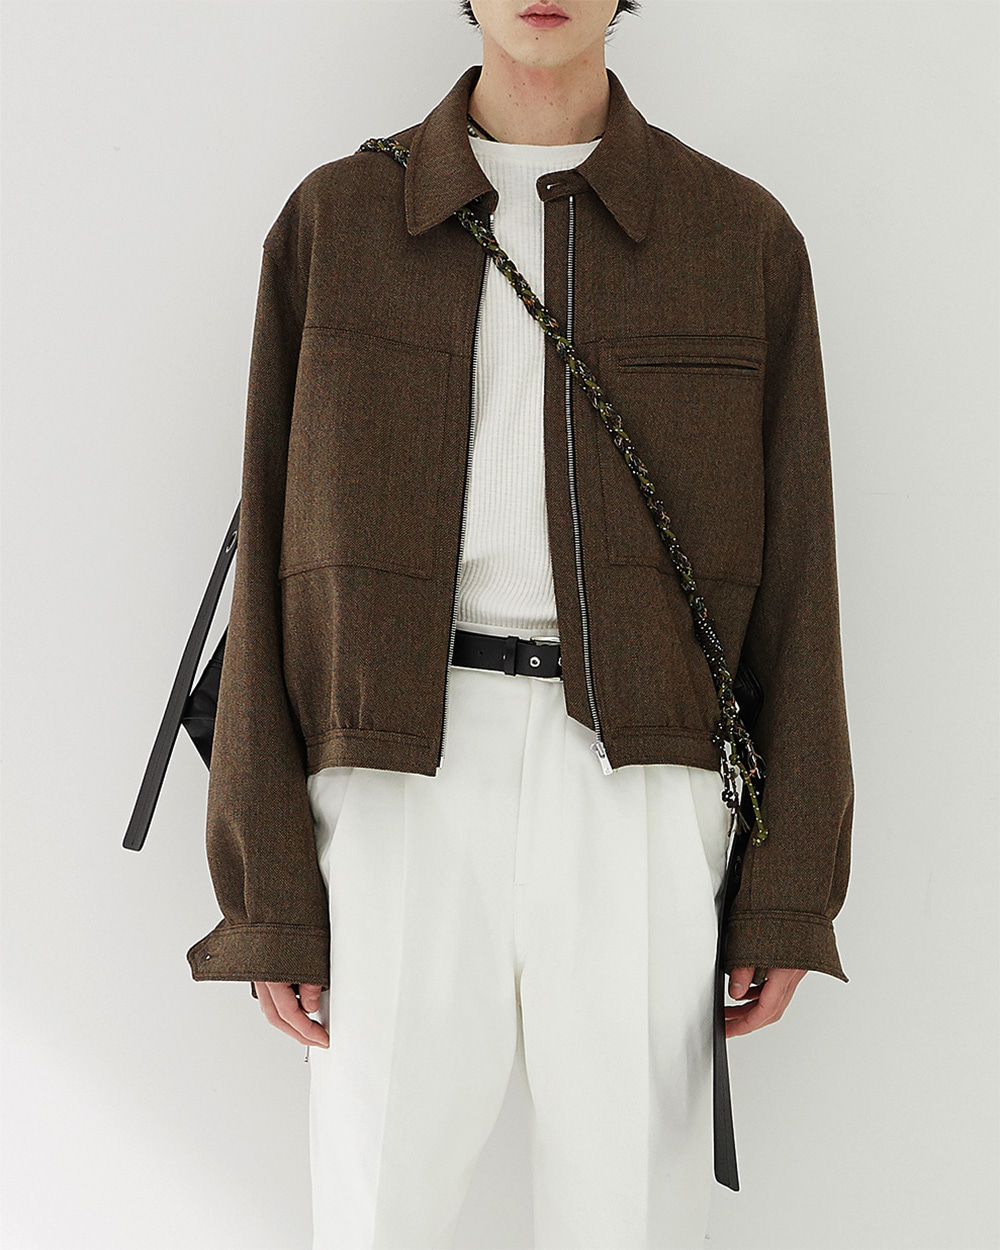 HALEINE알렌느 BROWN 3D detail wool short jacket(NJ006)